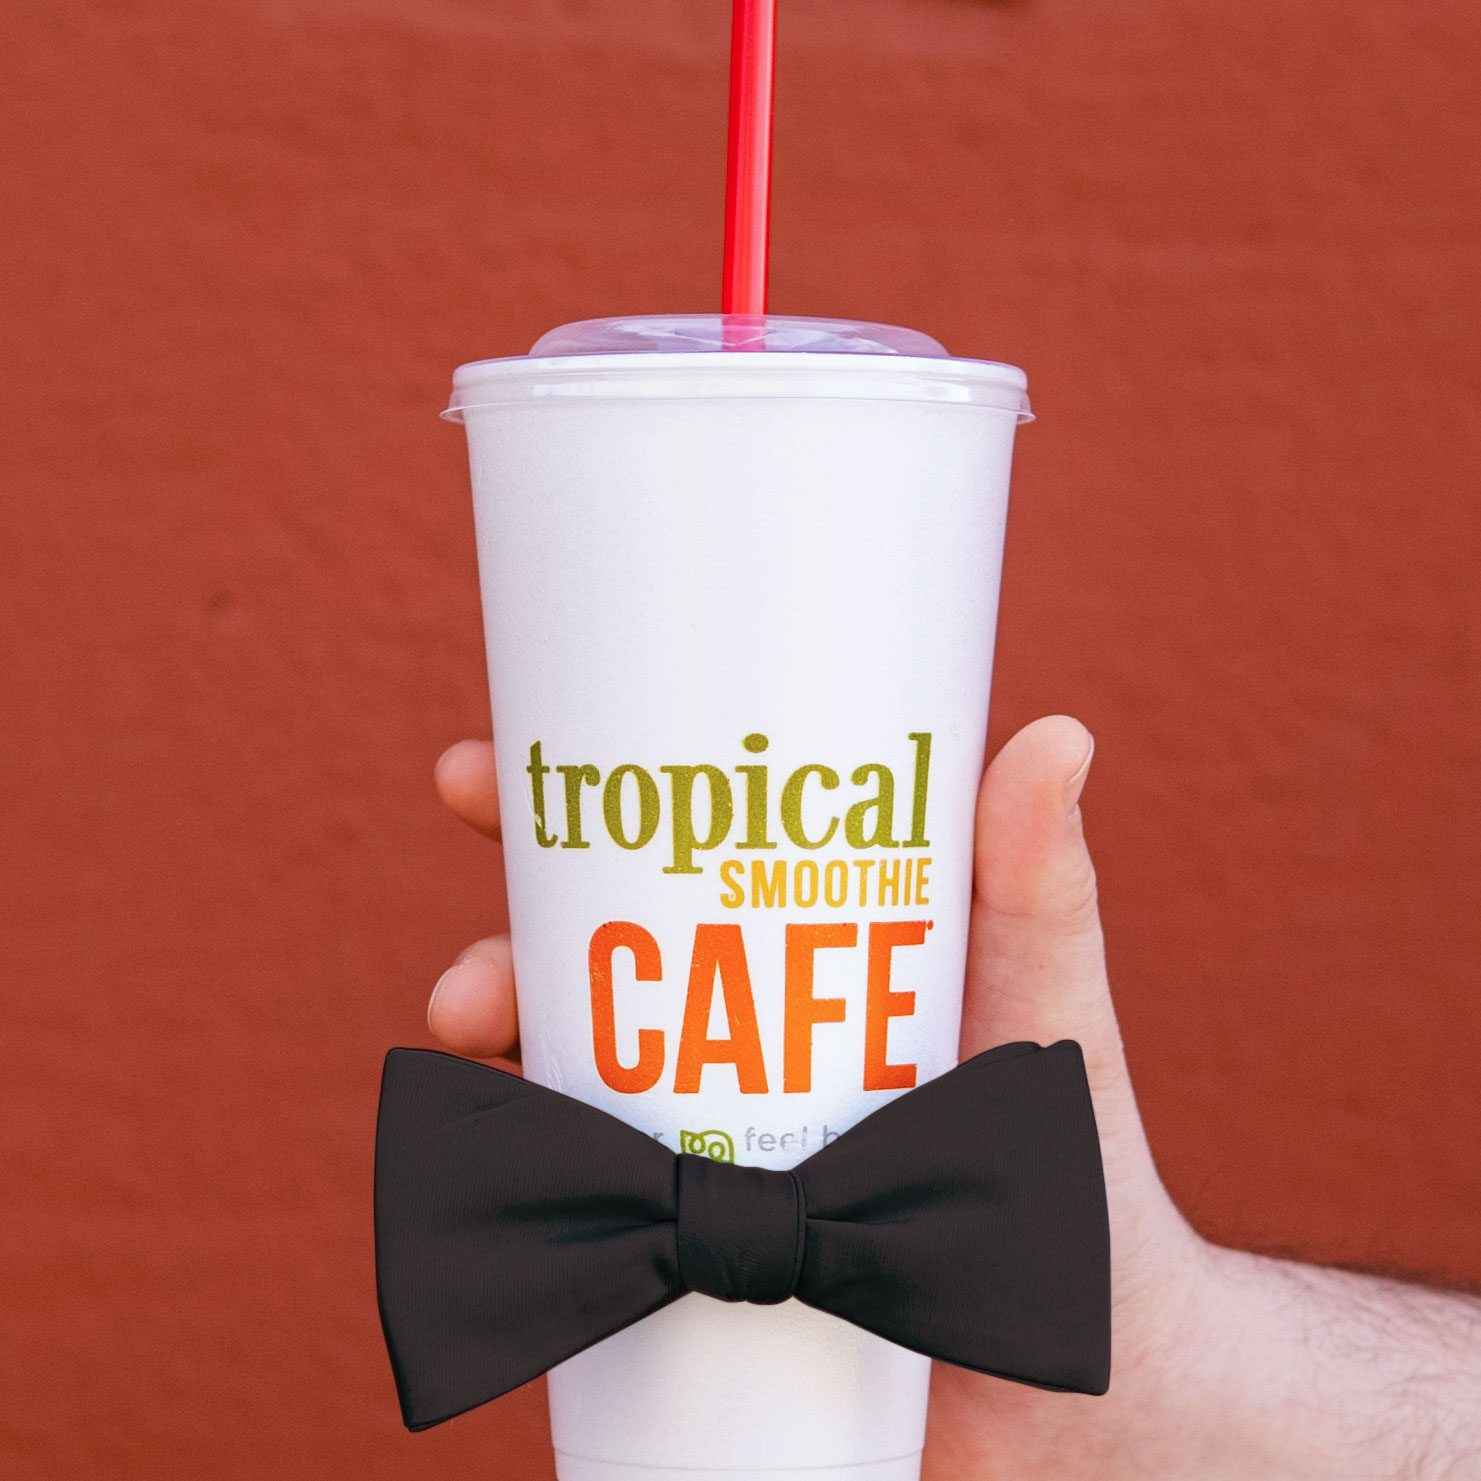 tropical smoothie cafe cup with a black bow tie